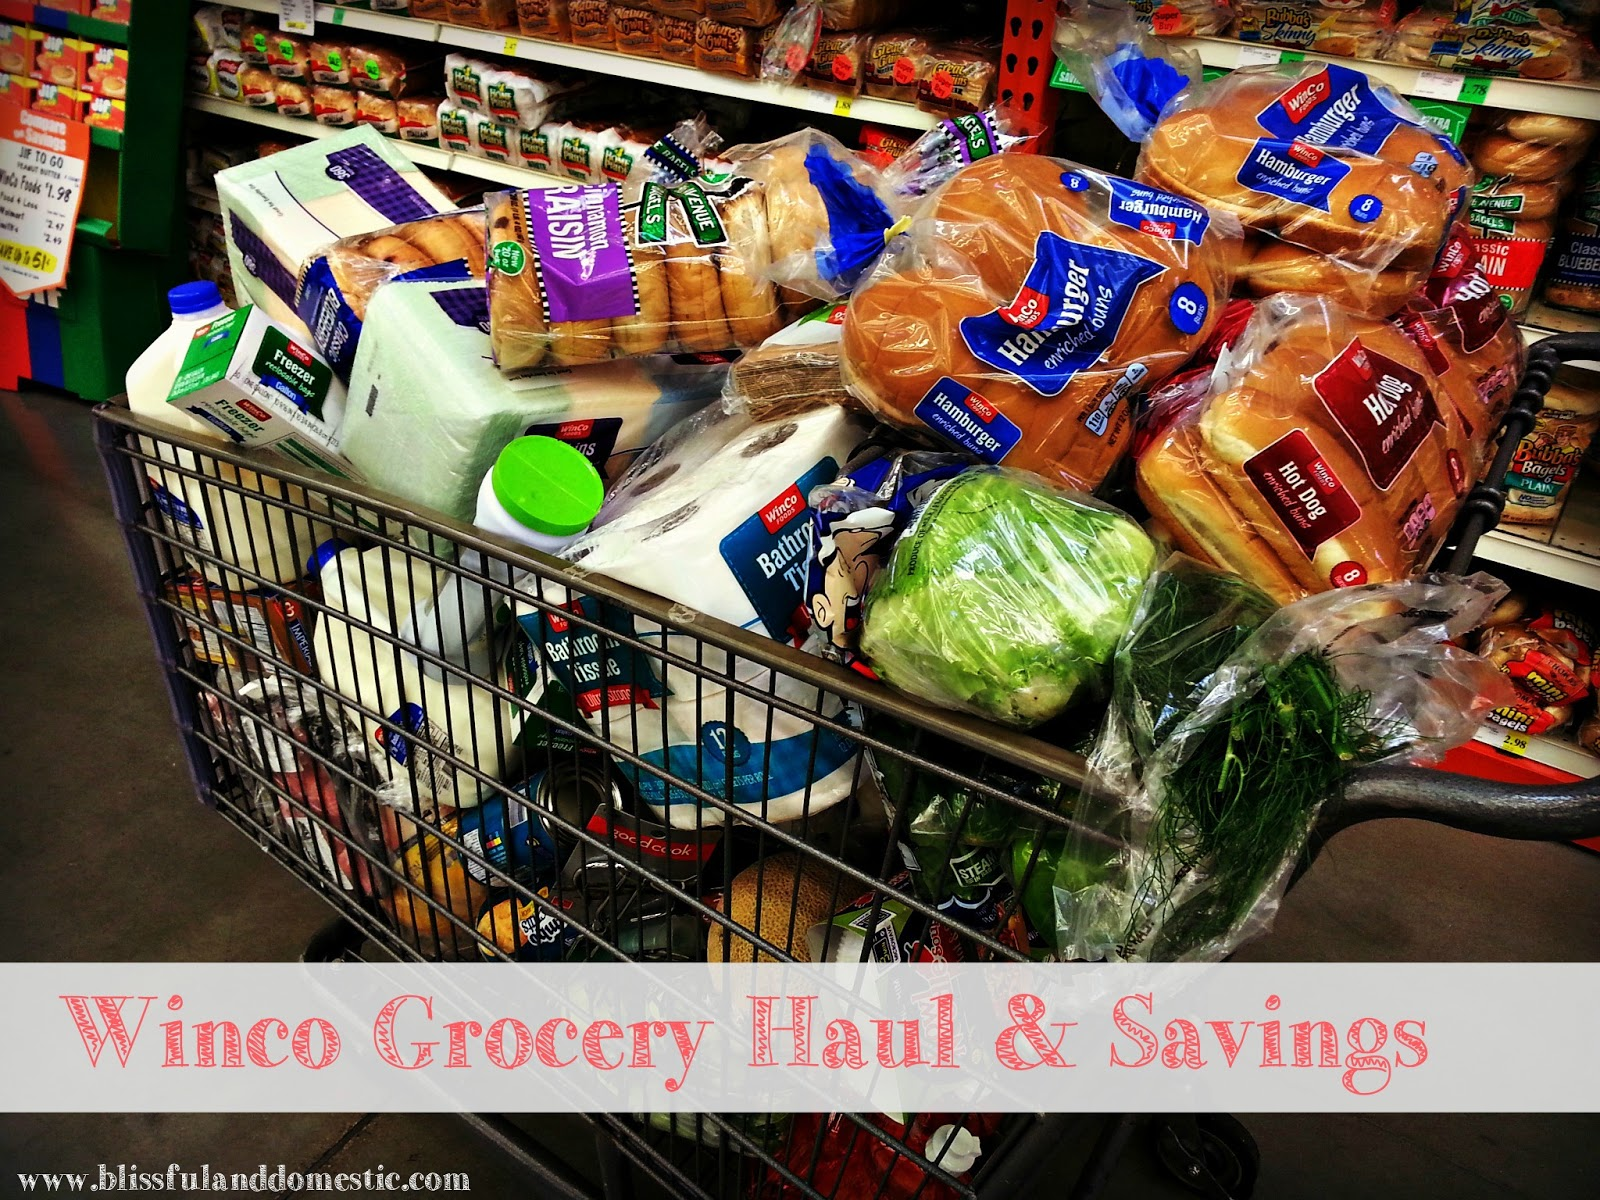 Monthly Shopping: Saving at Winco